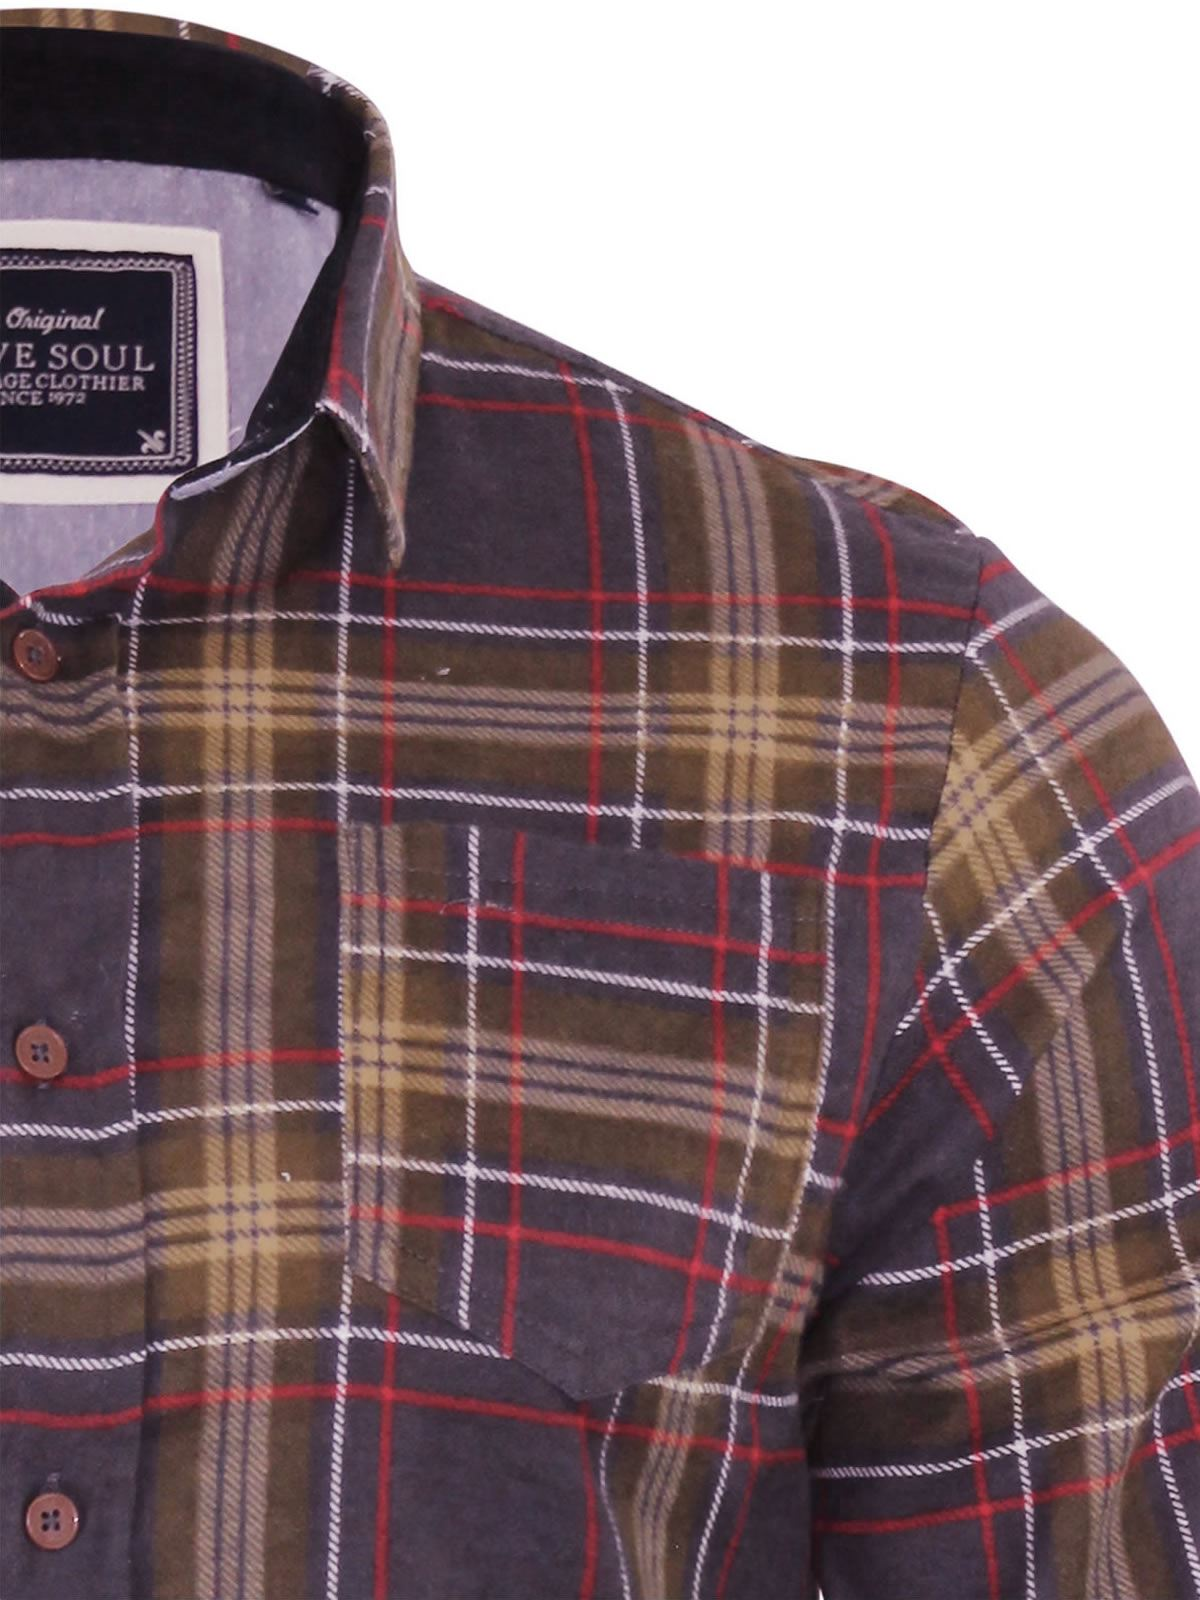 Mens-Check-Shirt-Brave-Soul-Flannel-Brushed-Cotton-Long-Sleeve-Casual-Top thumbnail 10